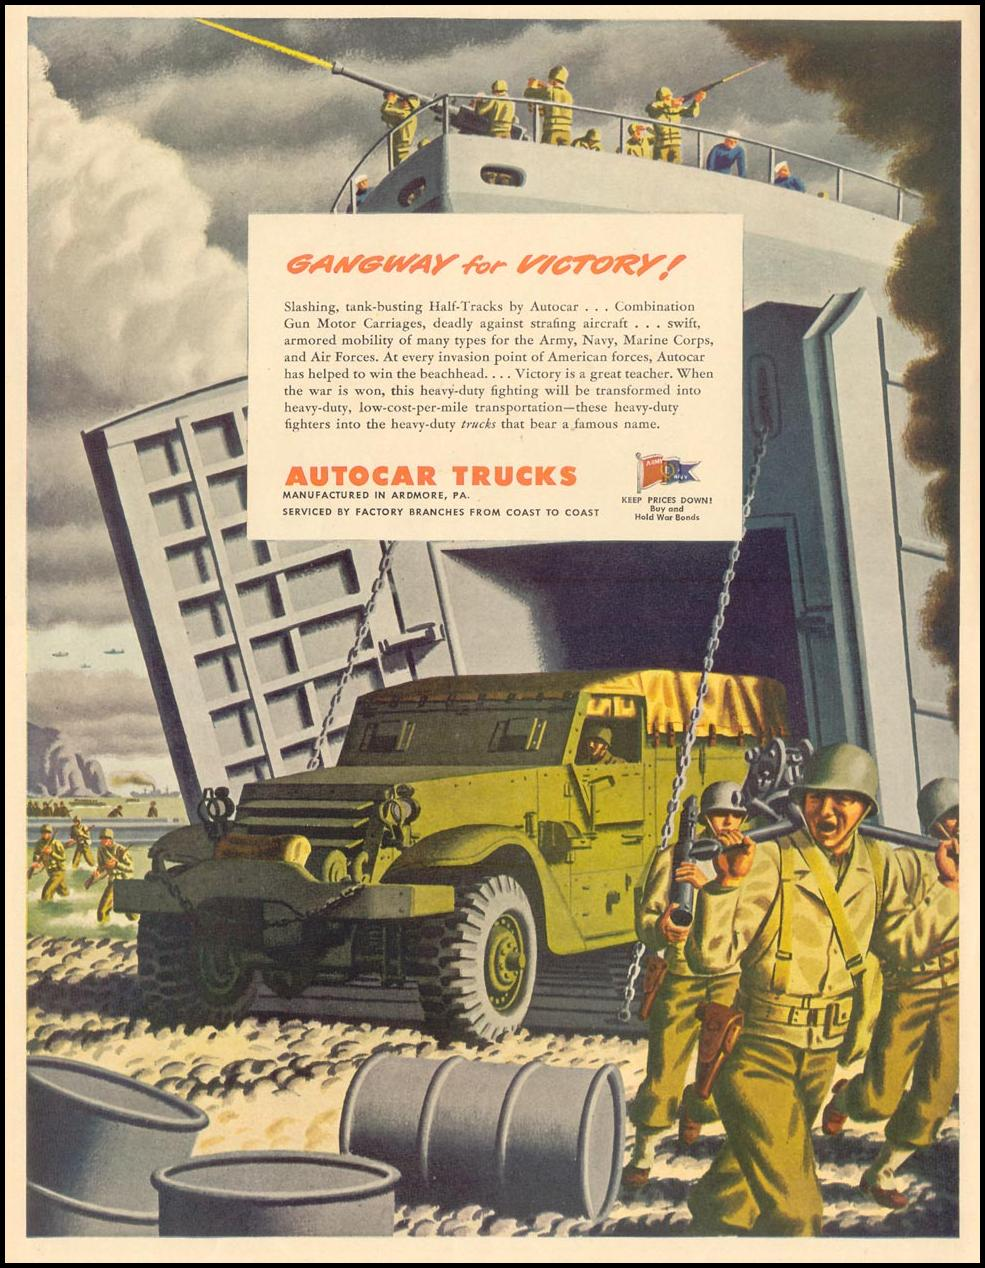 AUTOCAR TRUCKS